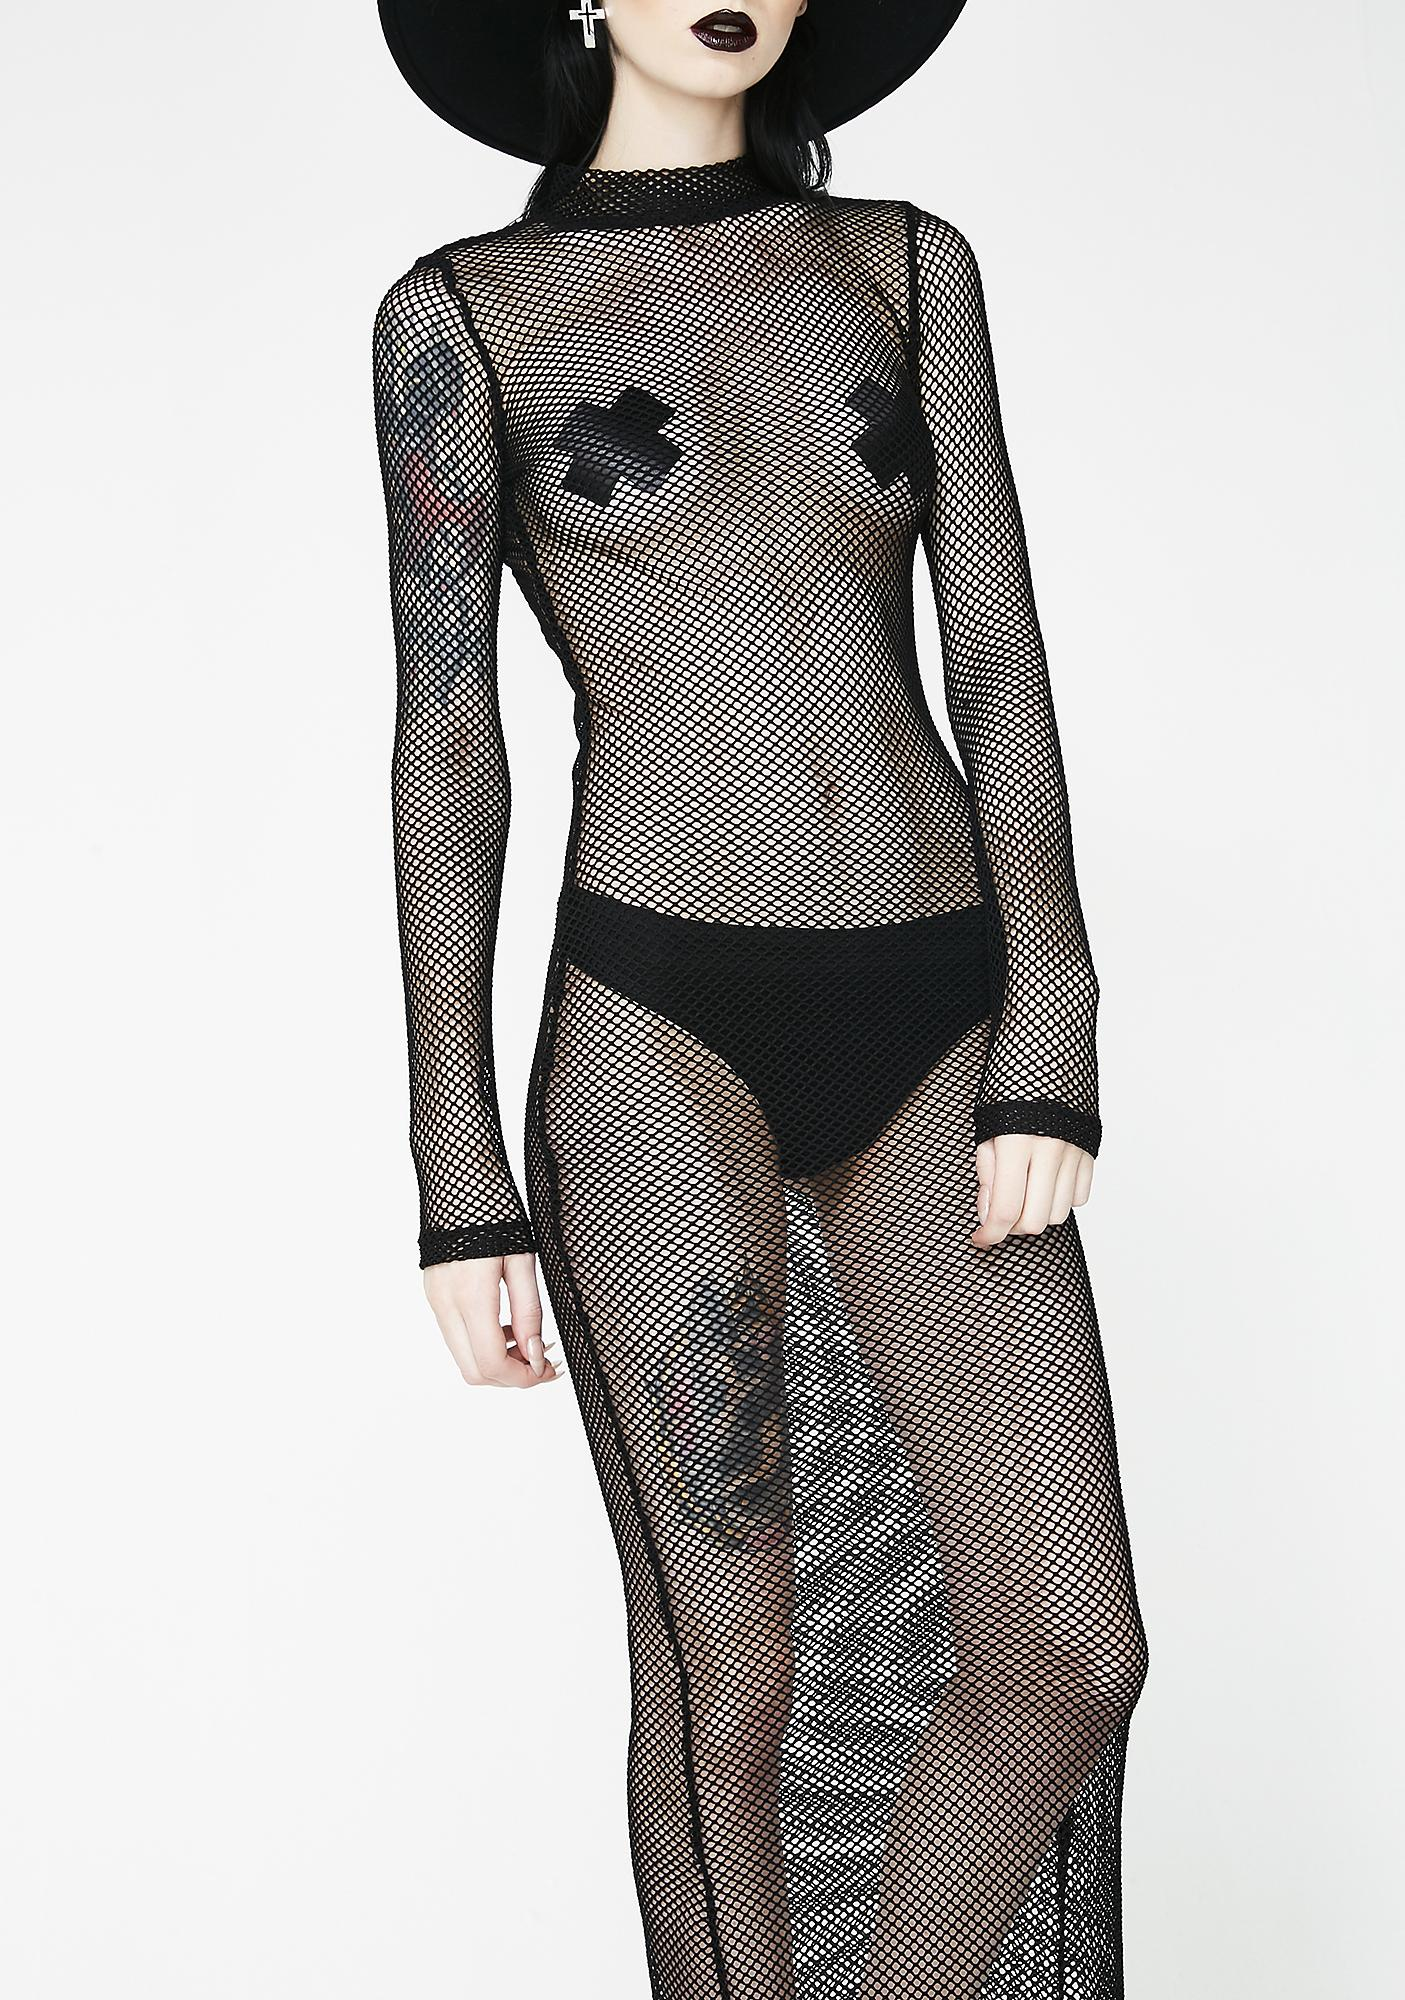 Kiki Riki Wicked Wicked West Fishnet Dress